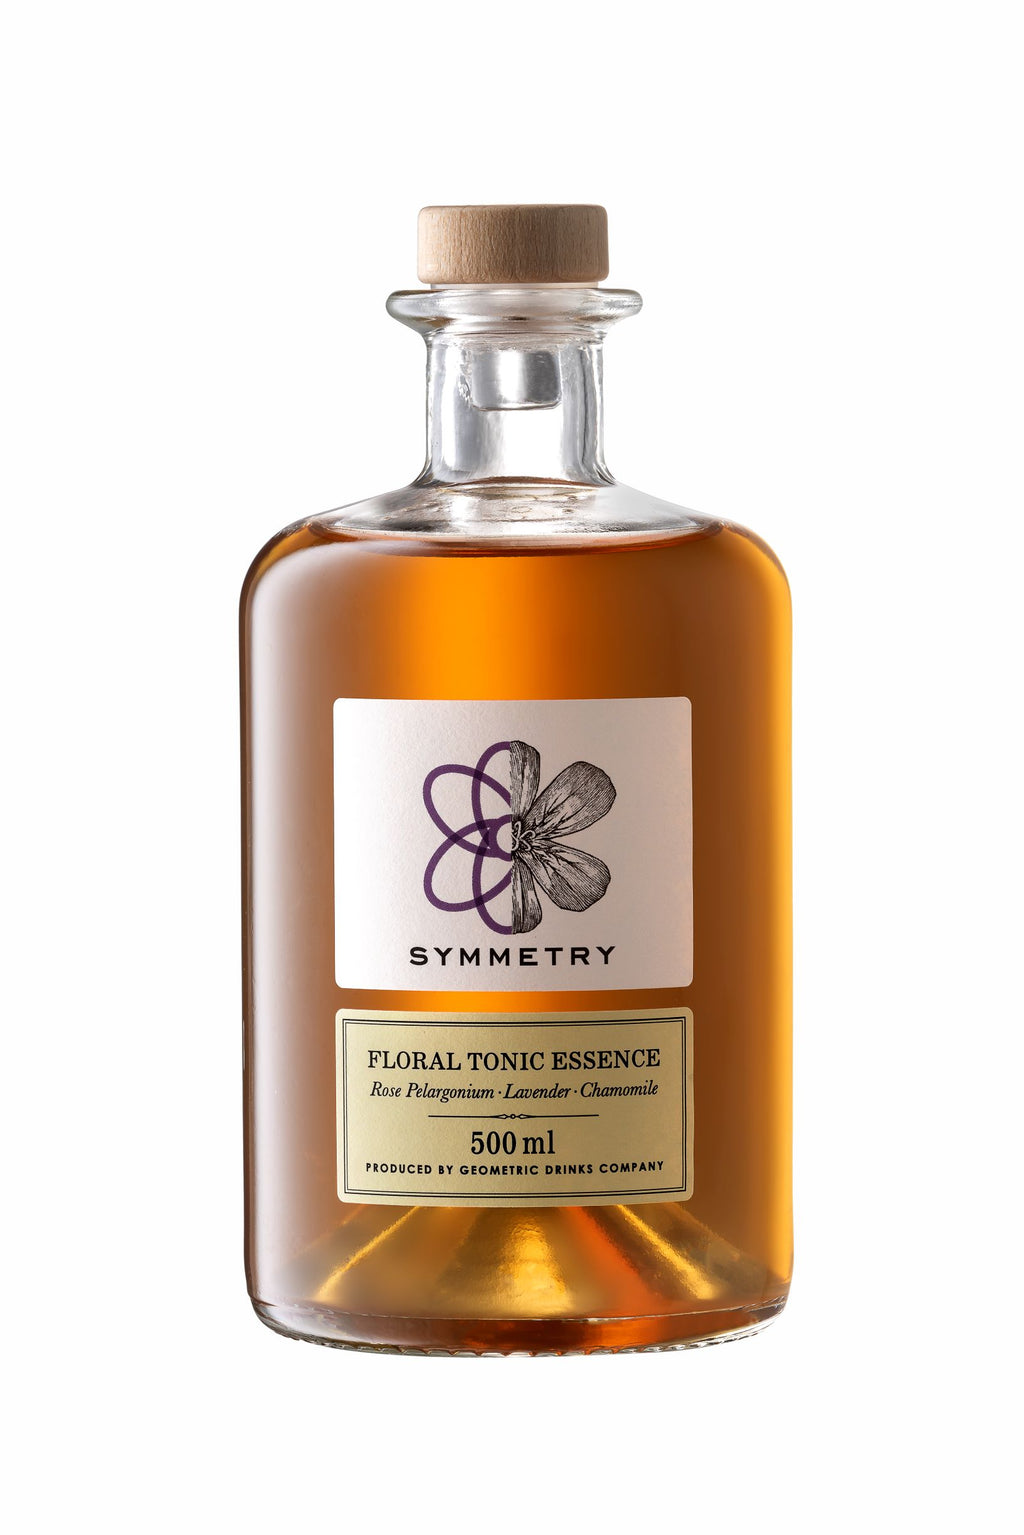 Symmetry Floral Tonic essence 500ml